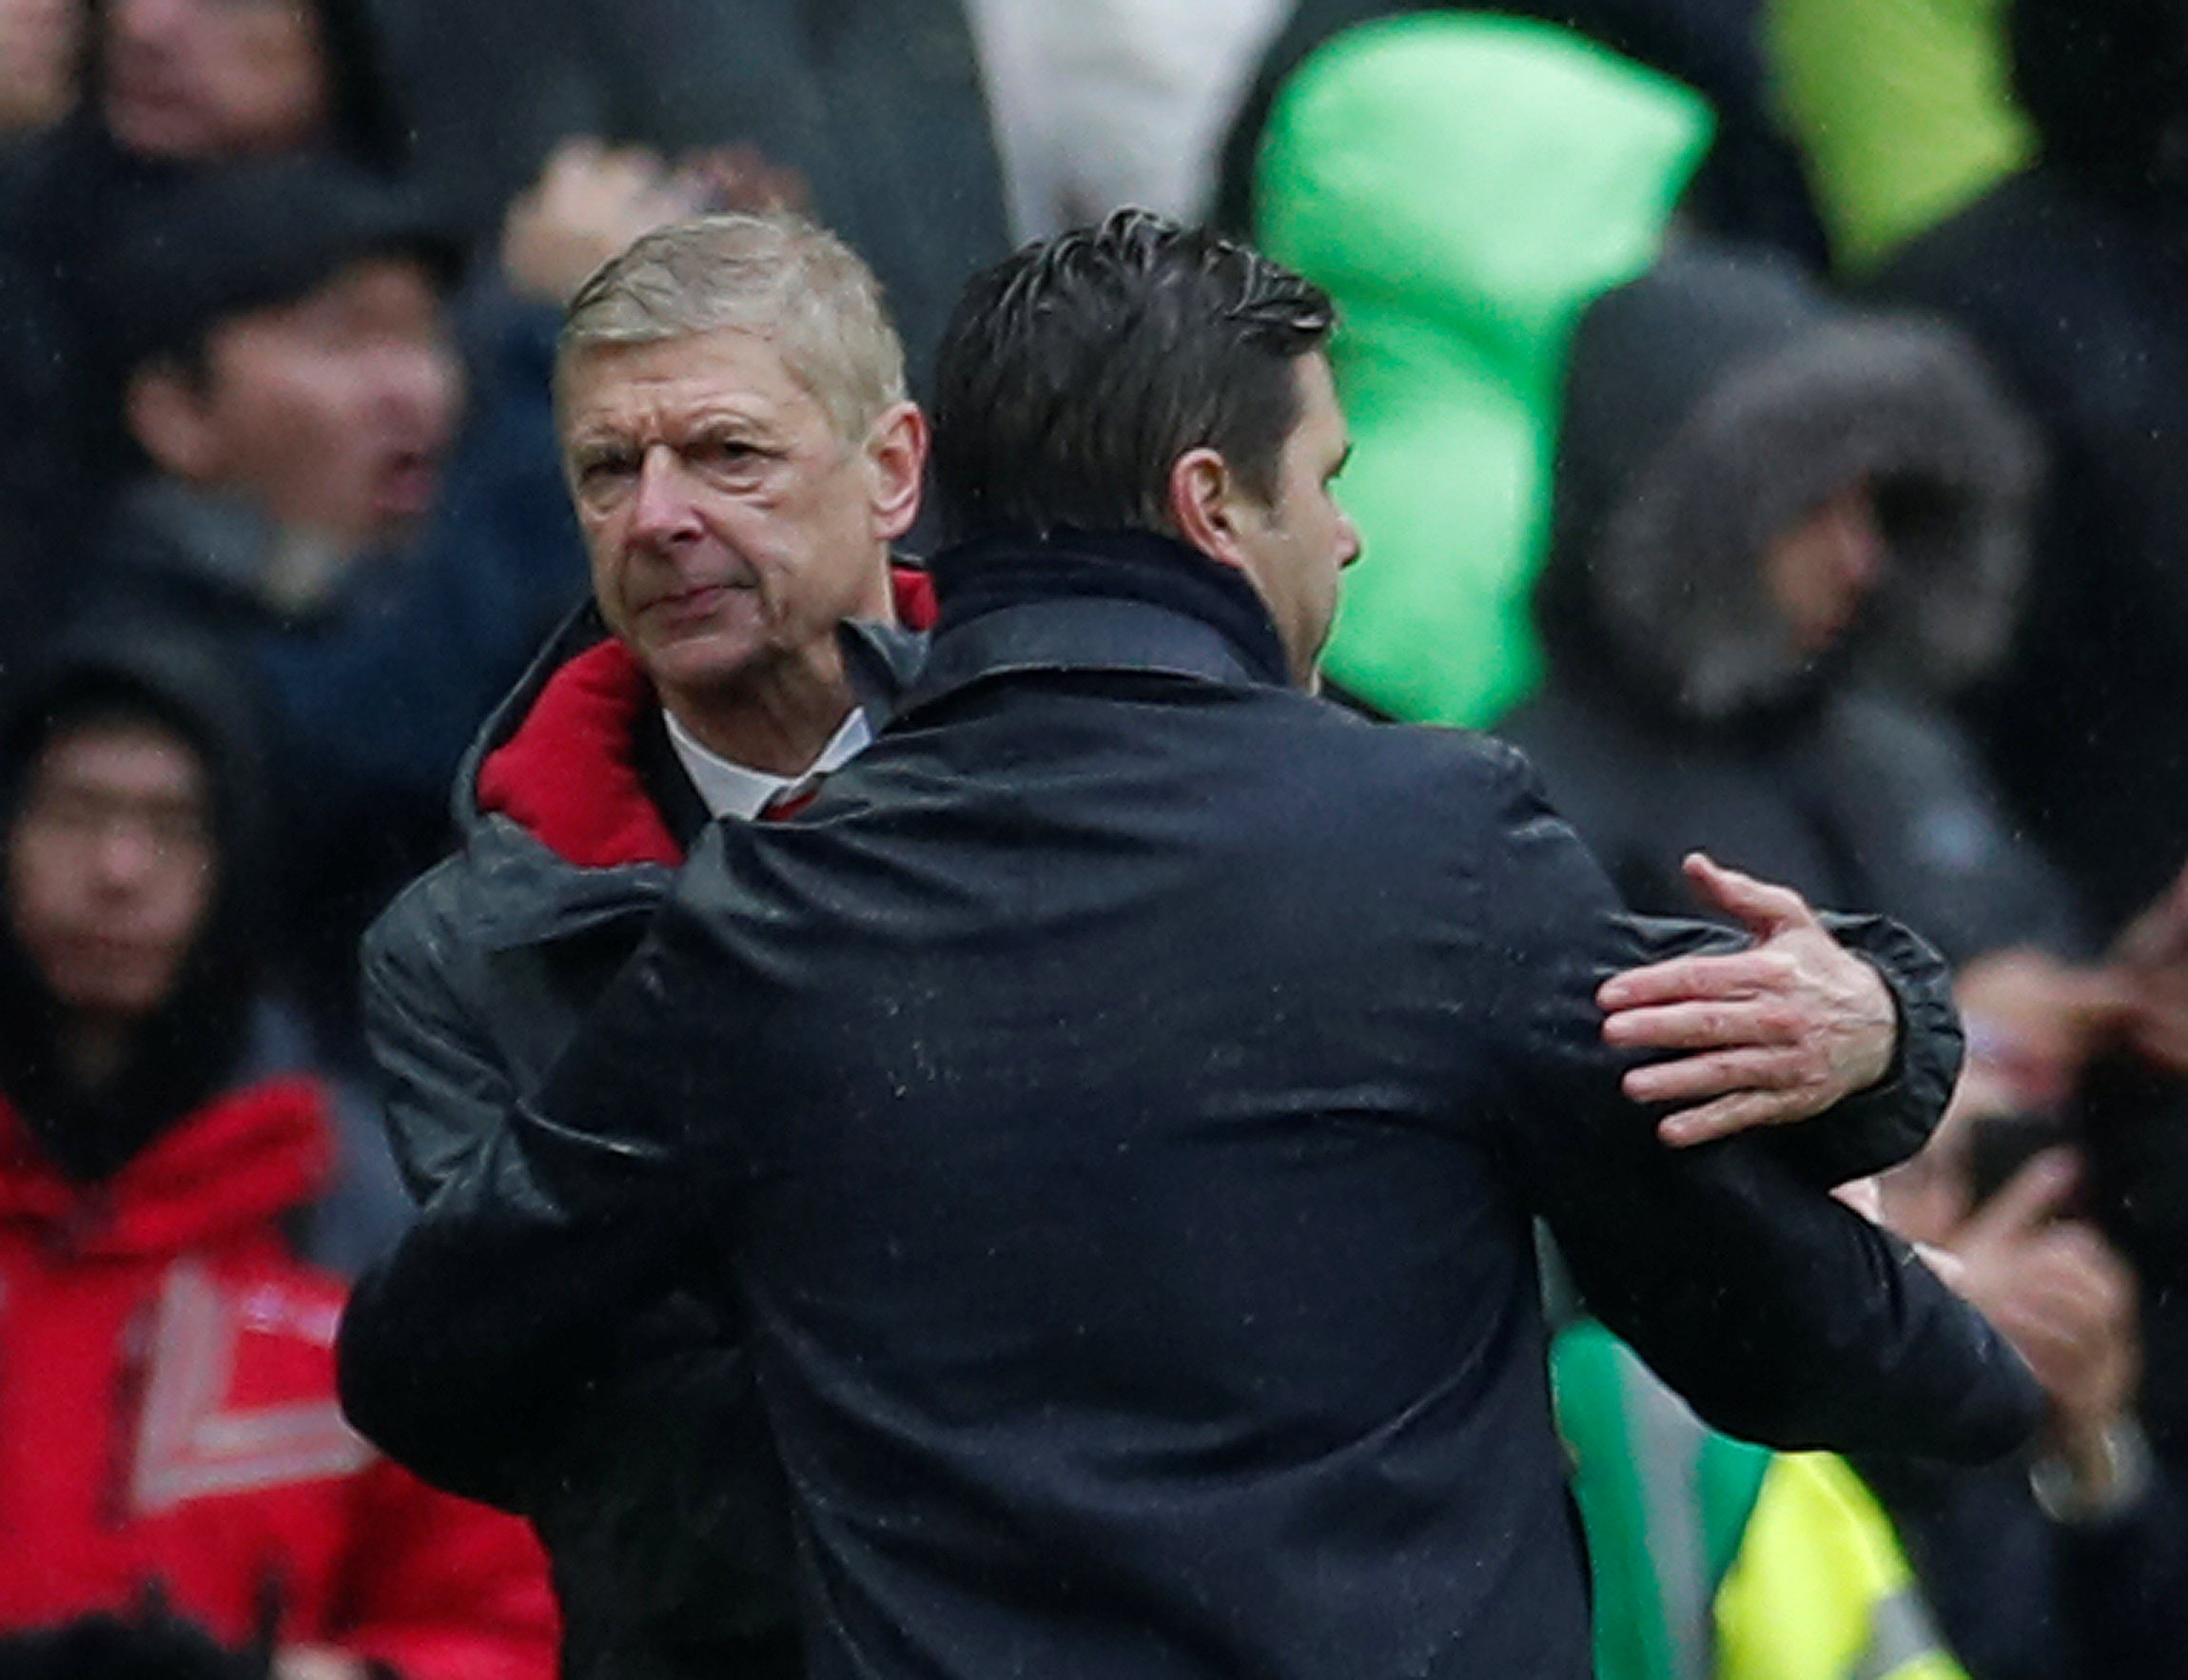 Shaking hands: Mauricio Pochettino and Arsene Wenger at the end of today's game. Picture: Action Images